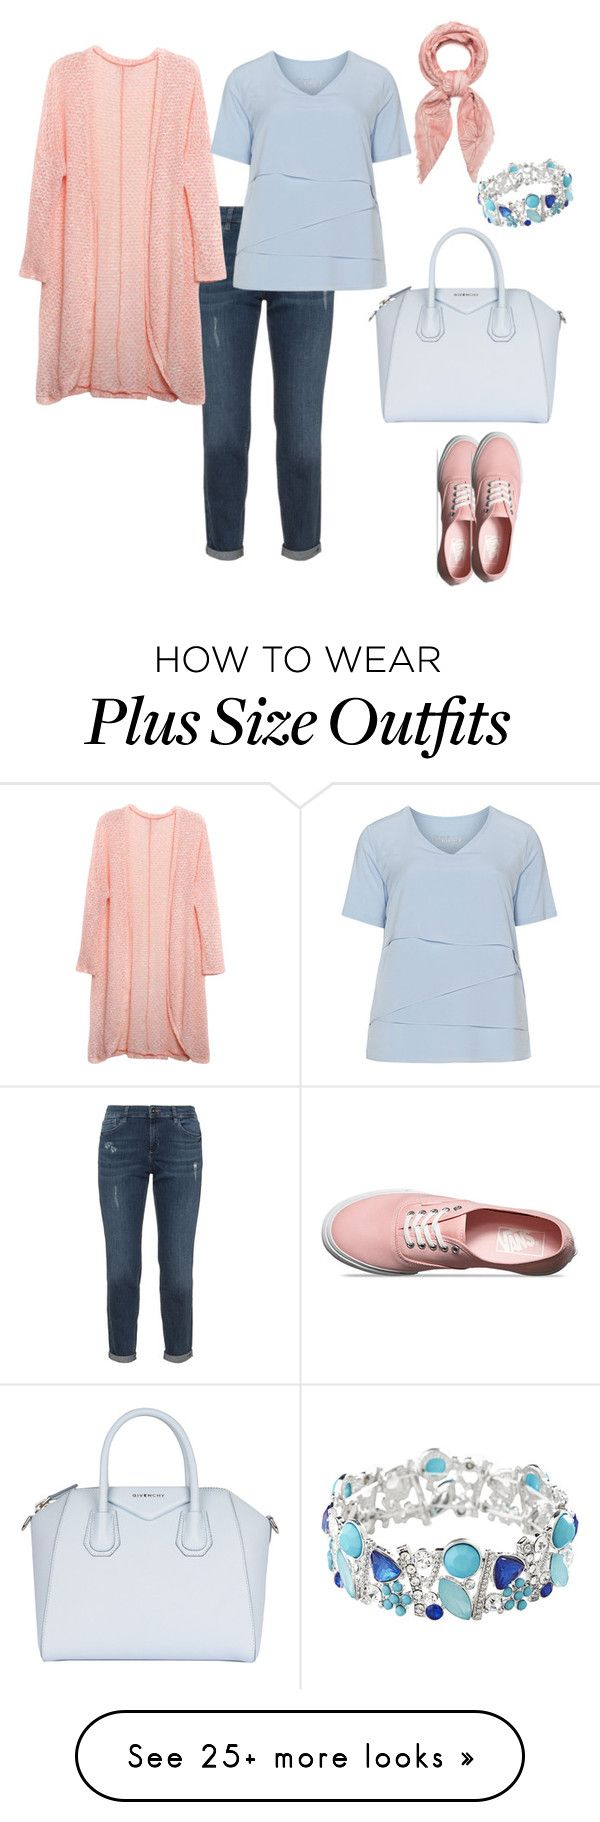 """plus size"" by irinairina745 on Polyvore featuring Relaxfeel, Avenue, Samoon, Vans, Givenchy and Fraas"